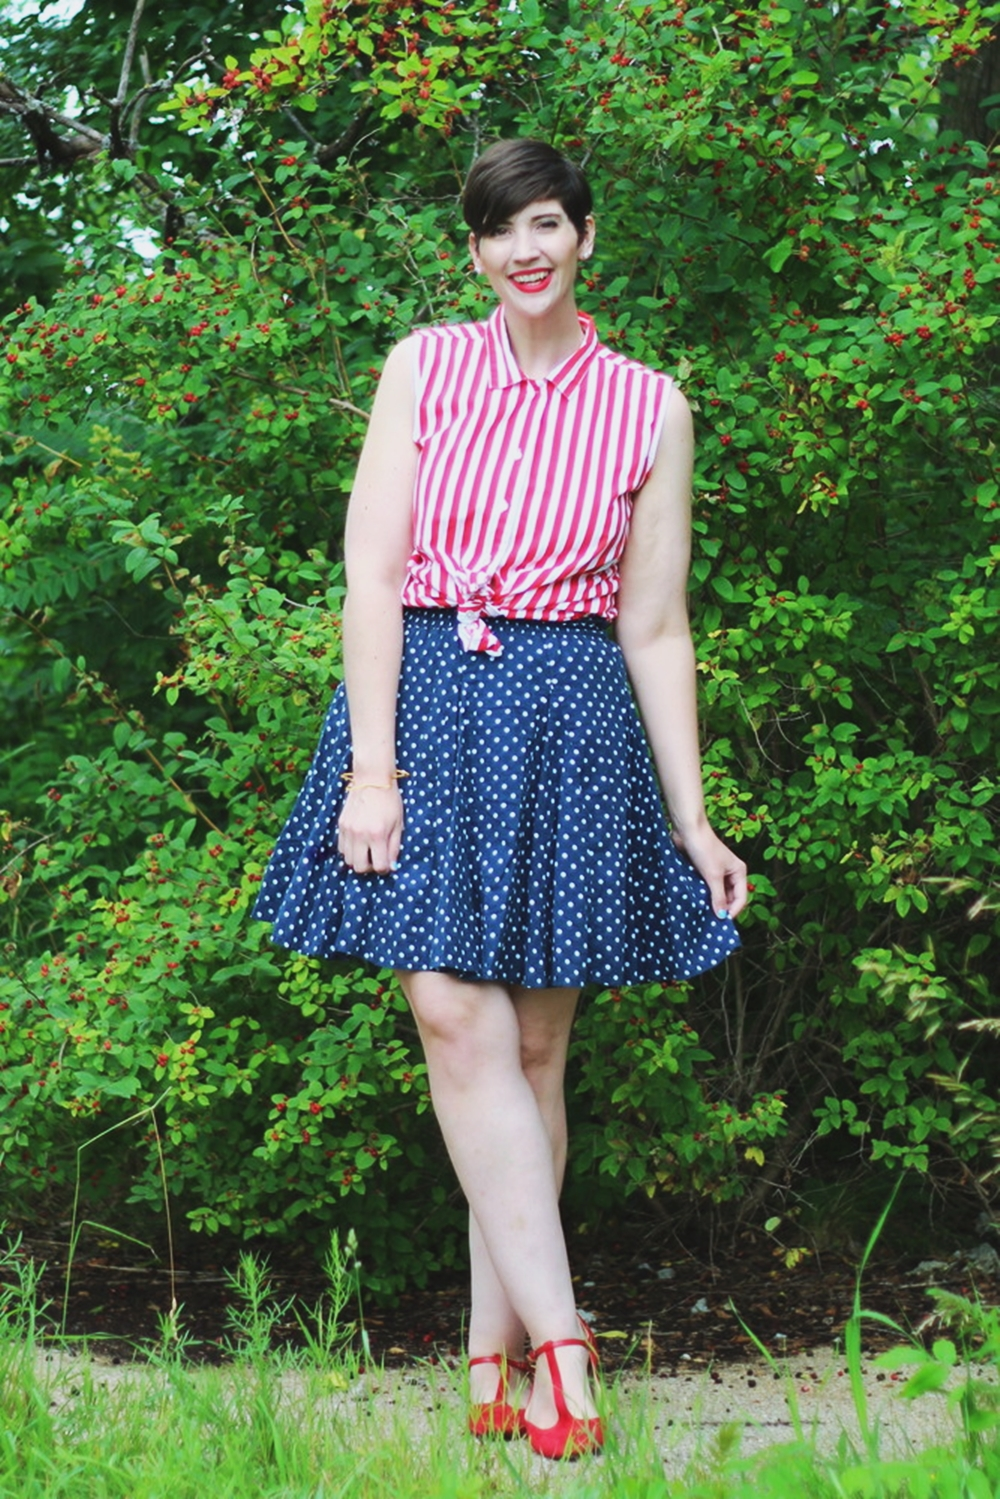 4th of July Outfit + DIY Star Bracelet | Collab w/ Figuring Out My Ever After